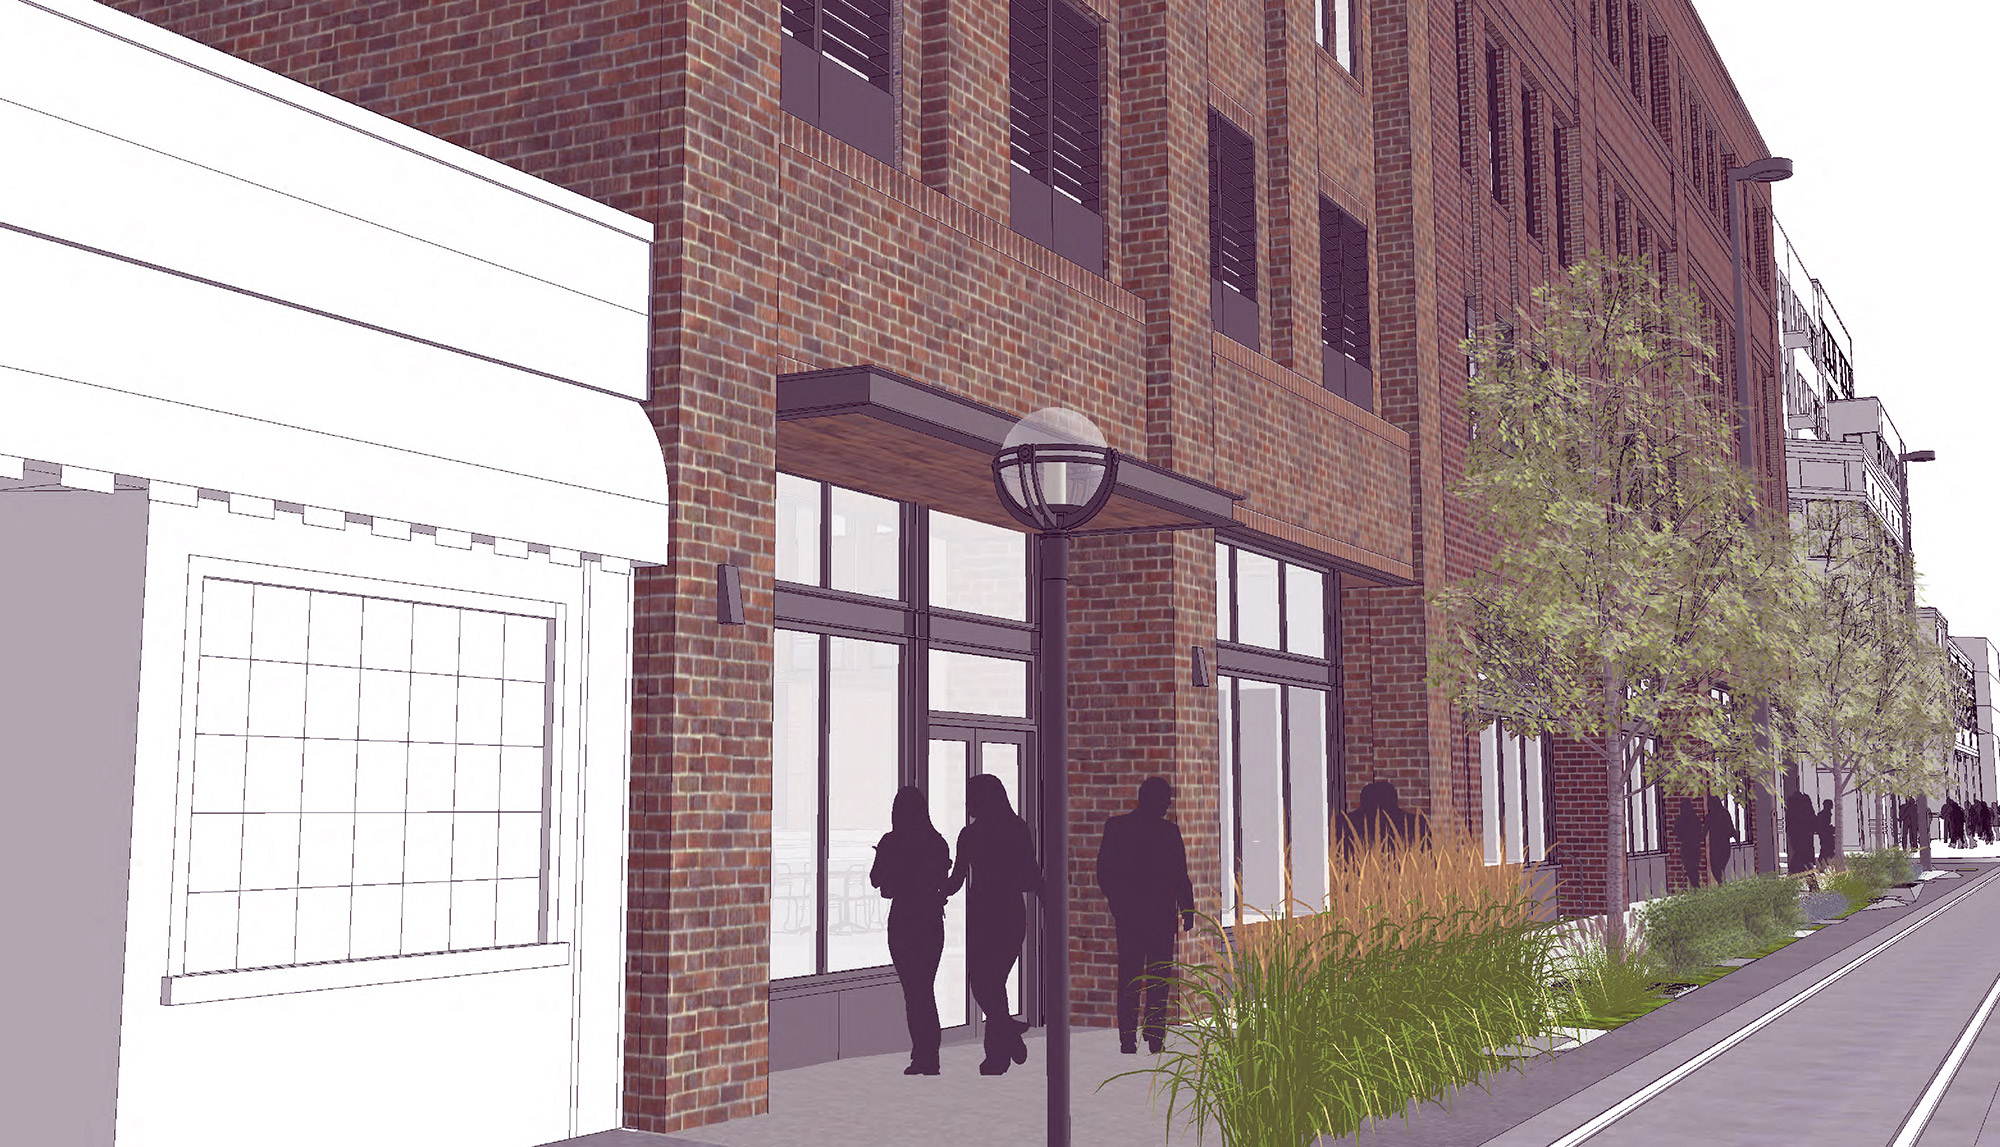 Rendering of 2602 Welton, courtesy of Craine Architecture